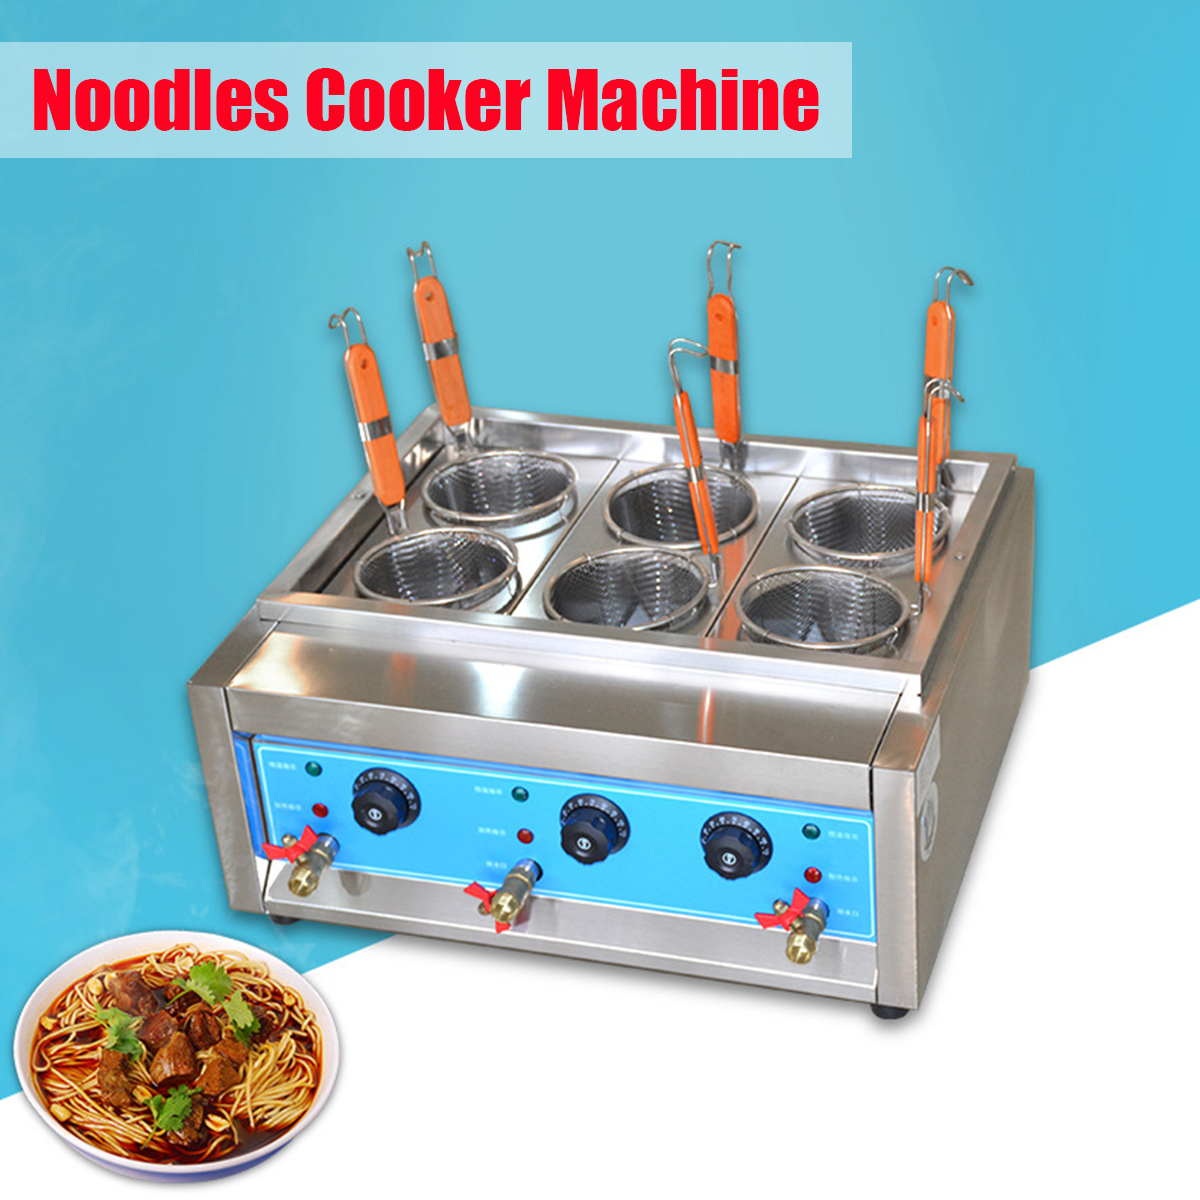 220V Multifunctional Table Electric Noodles Cooker Heating Machine Furnace 4/6 Holes Commercial Pasta Food Cooker Business Use 40pcs slim patch weight loss garcinia cambogia reduce diet nature slimming burn fat weight loss effective better curbs appetite